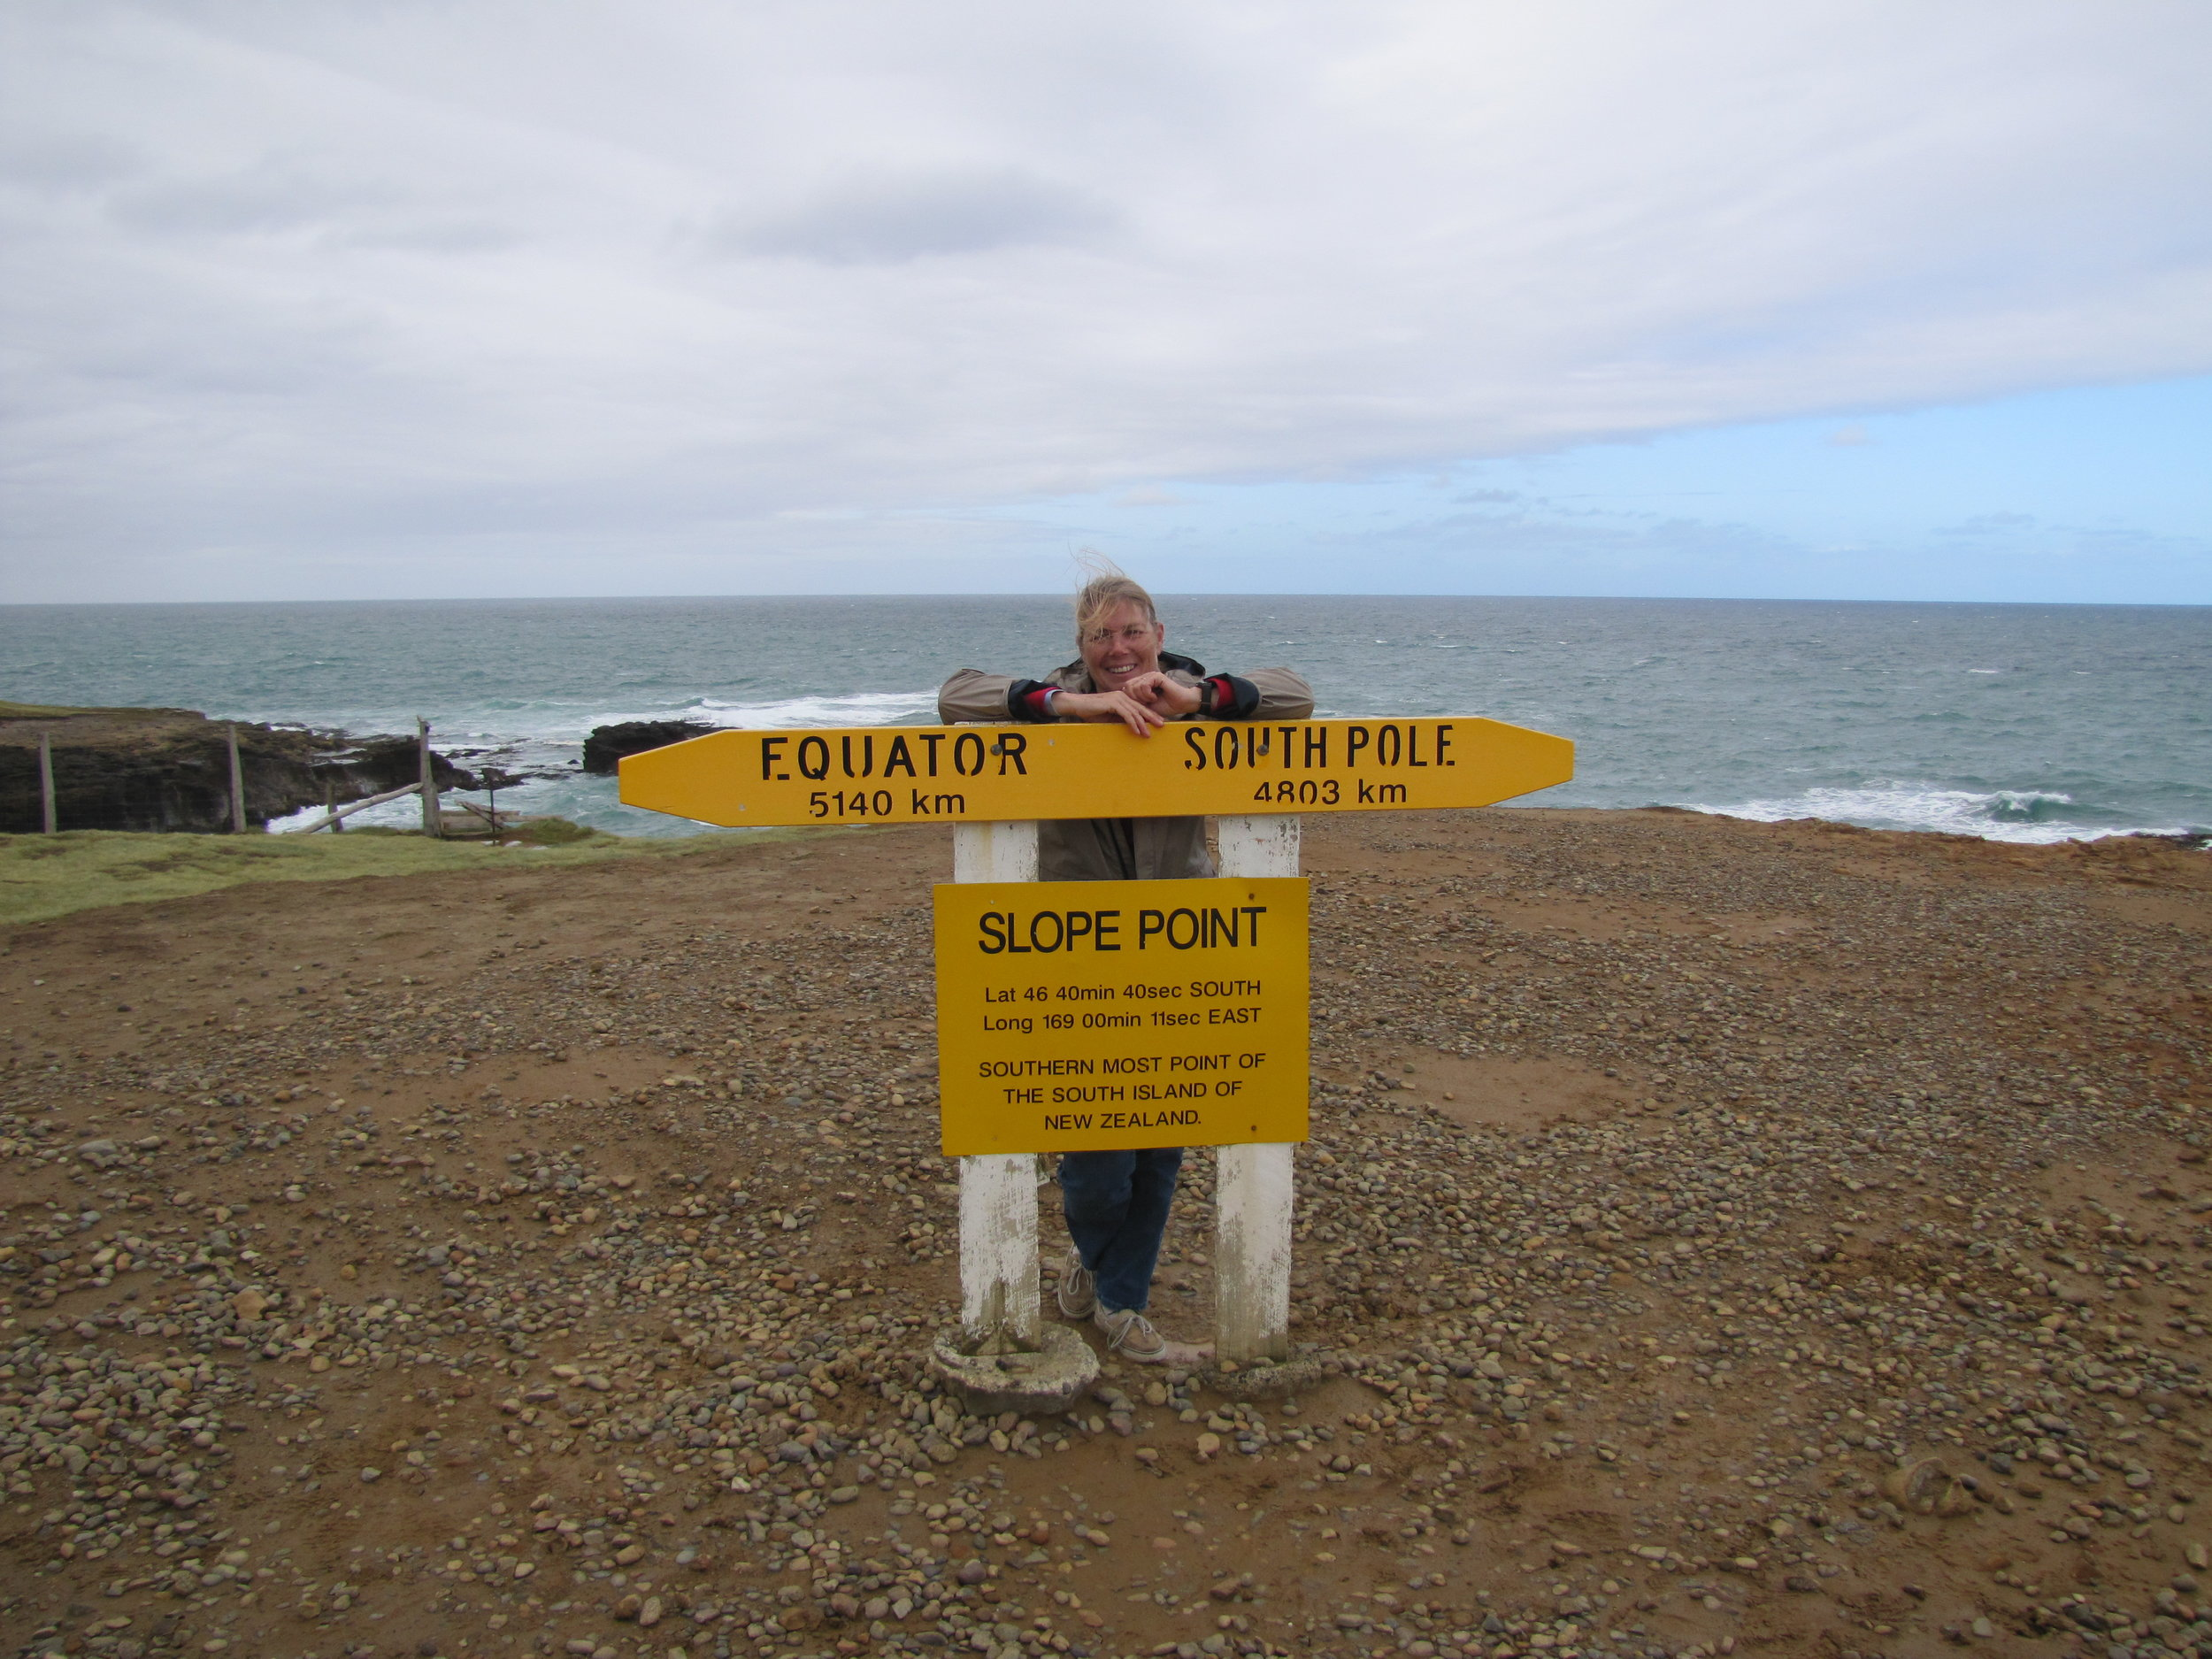 Slope Point - Most southern point on NZ's South Island